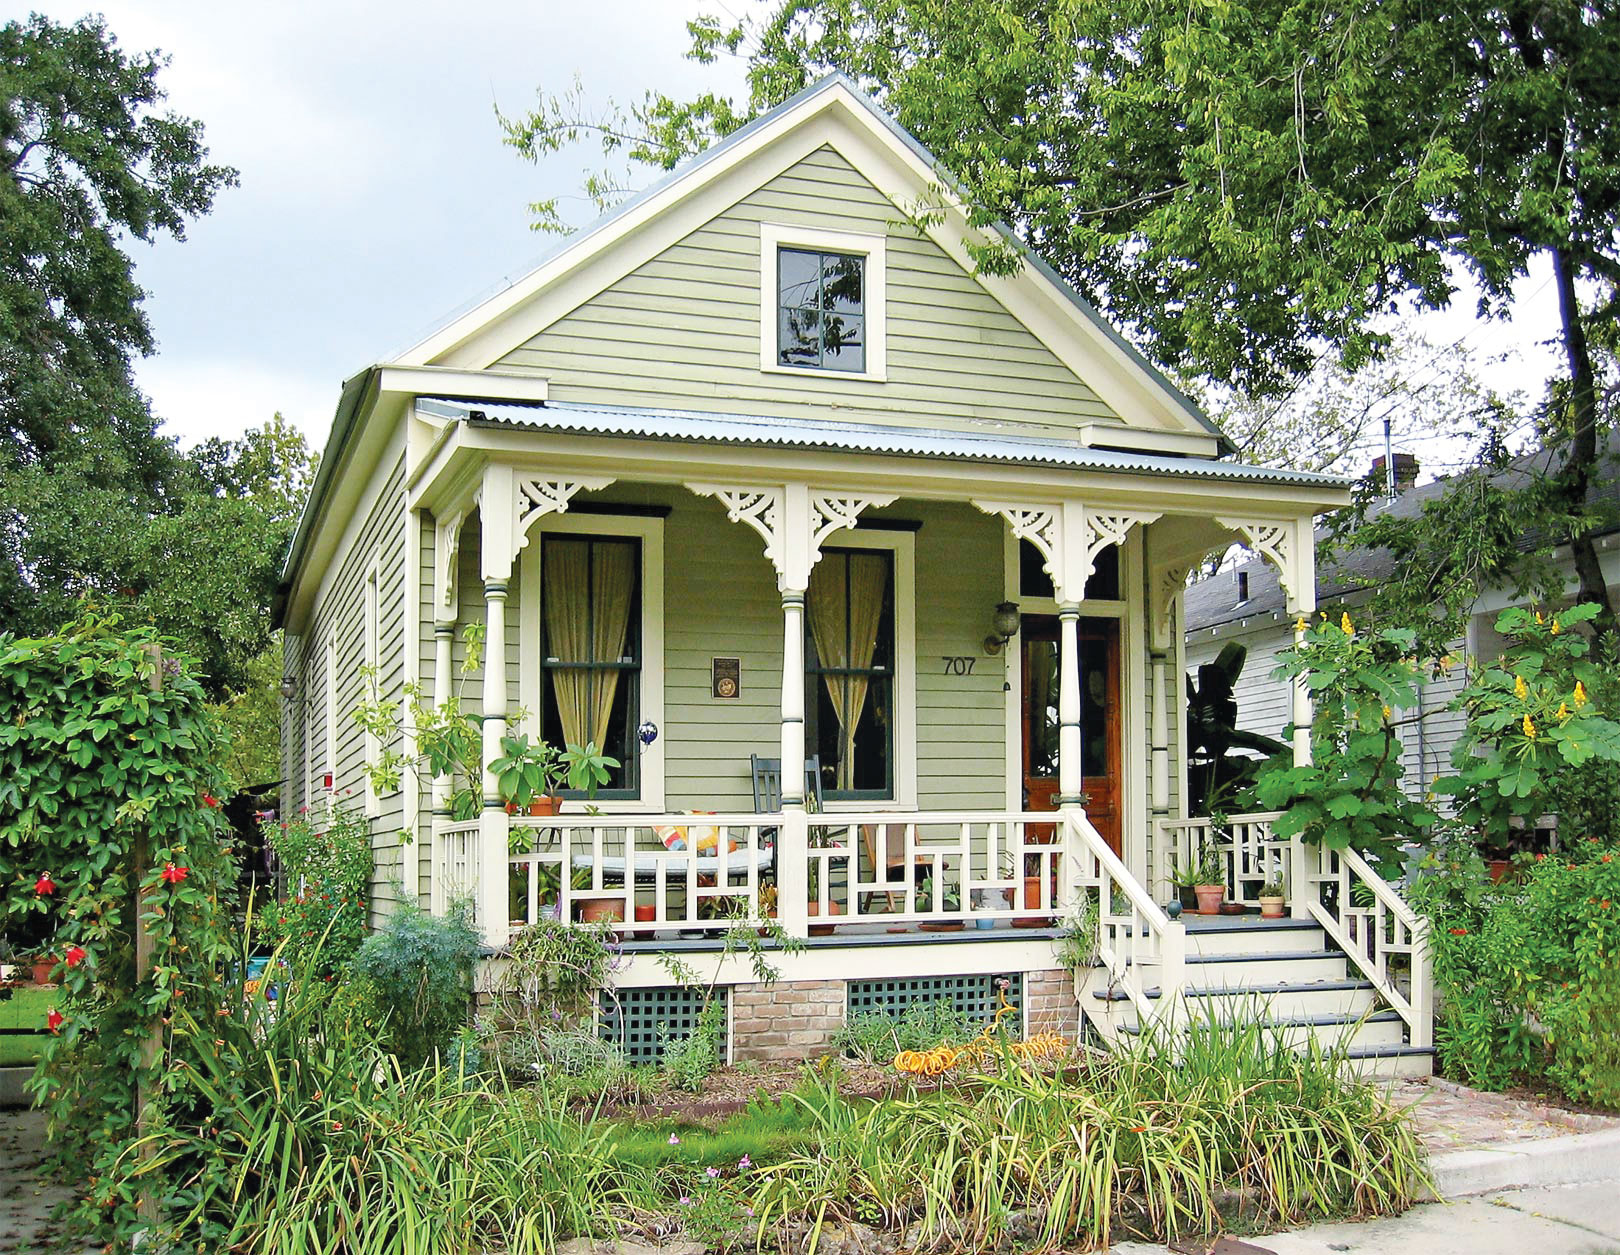 Progress in historic preservation can be seen in revitalized homes in the Old Sixth Ward, among many other neighborhoods. /  photo by Jim Parsons